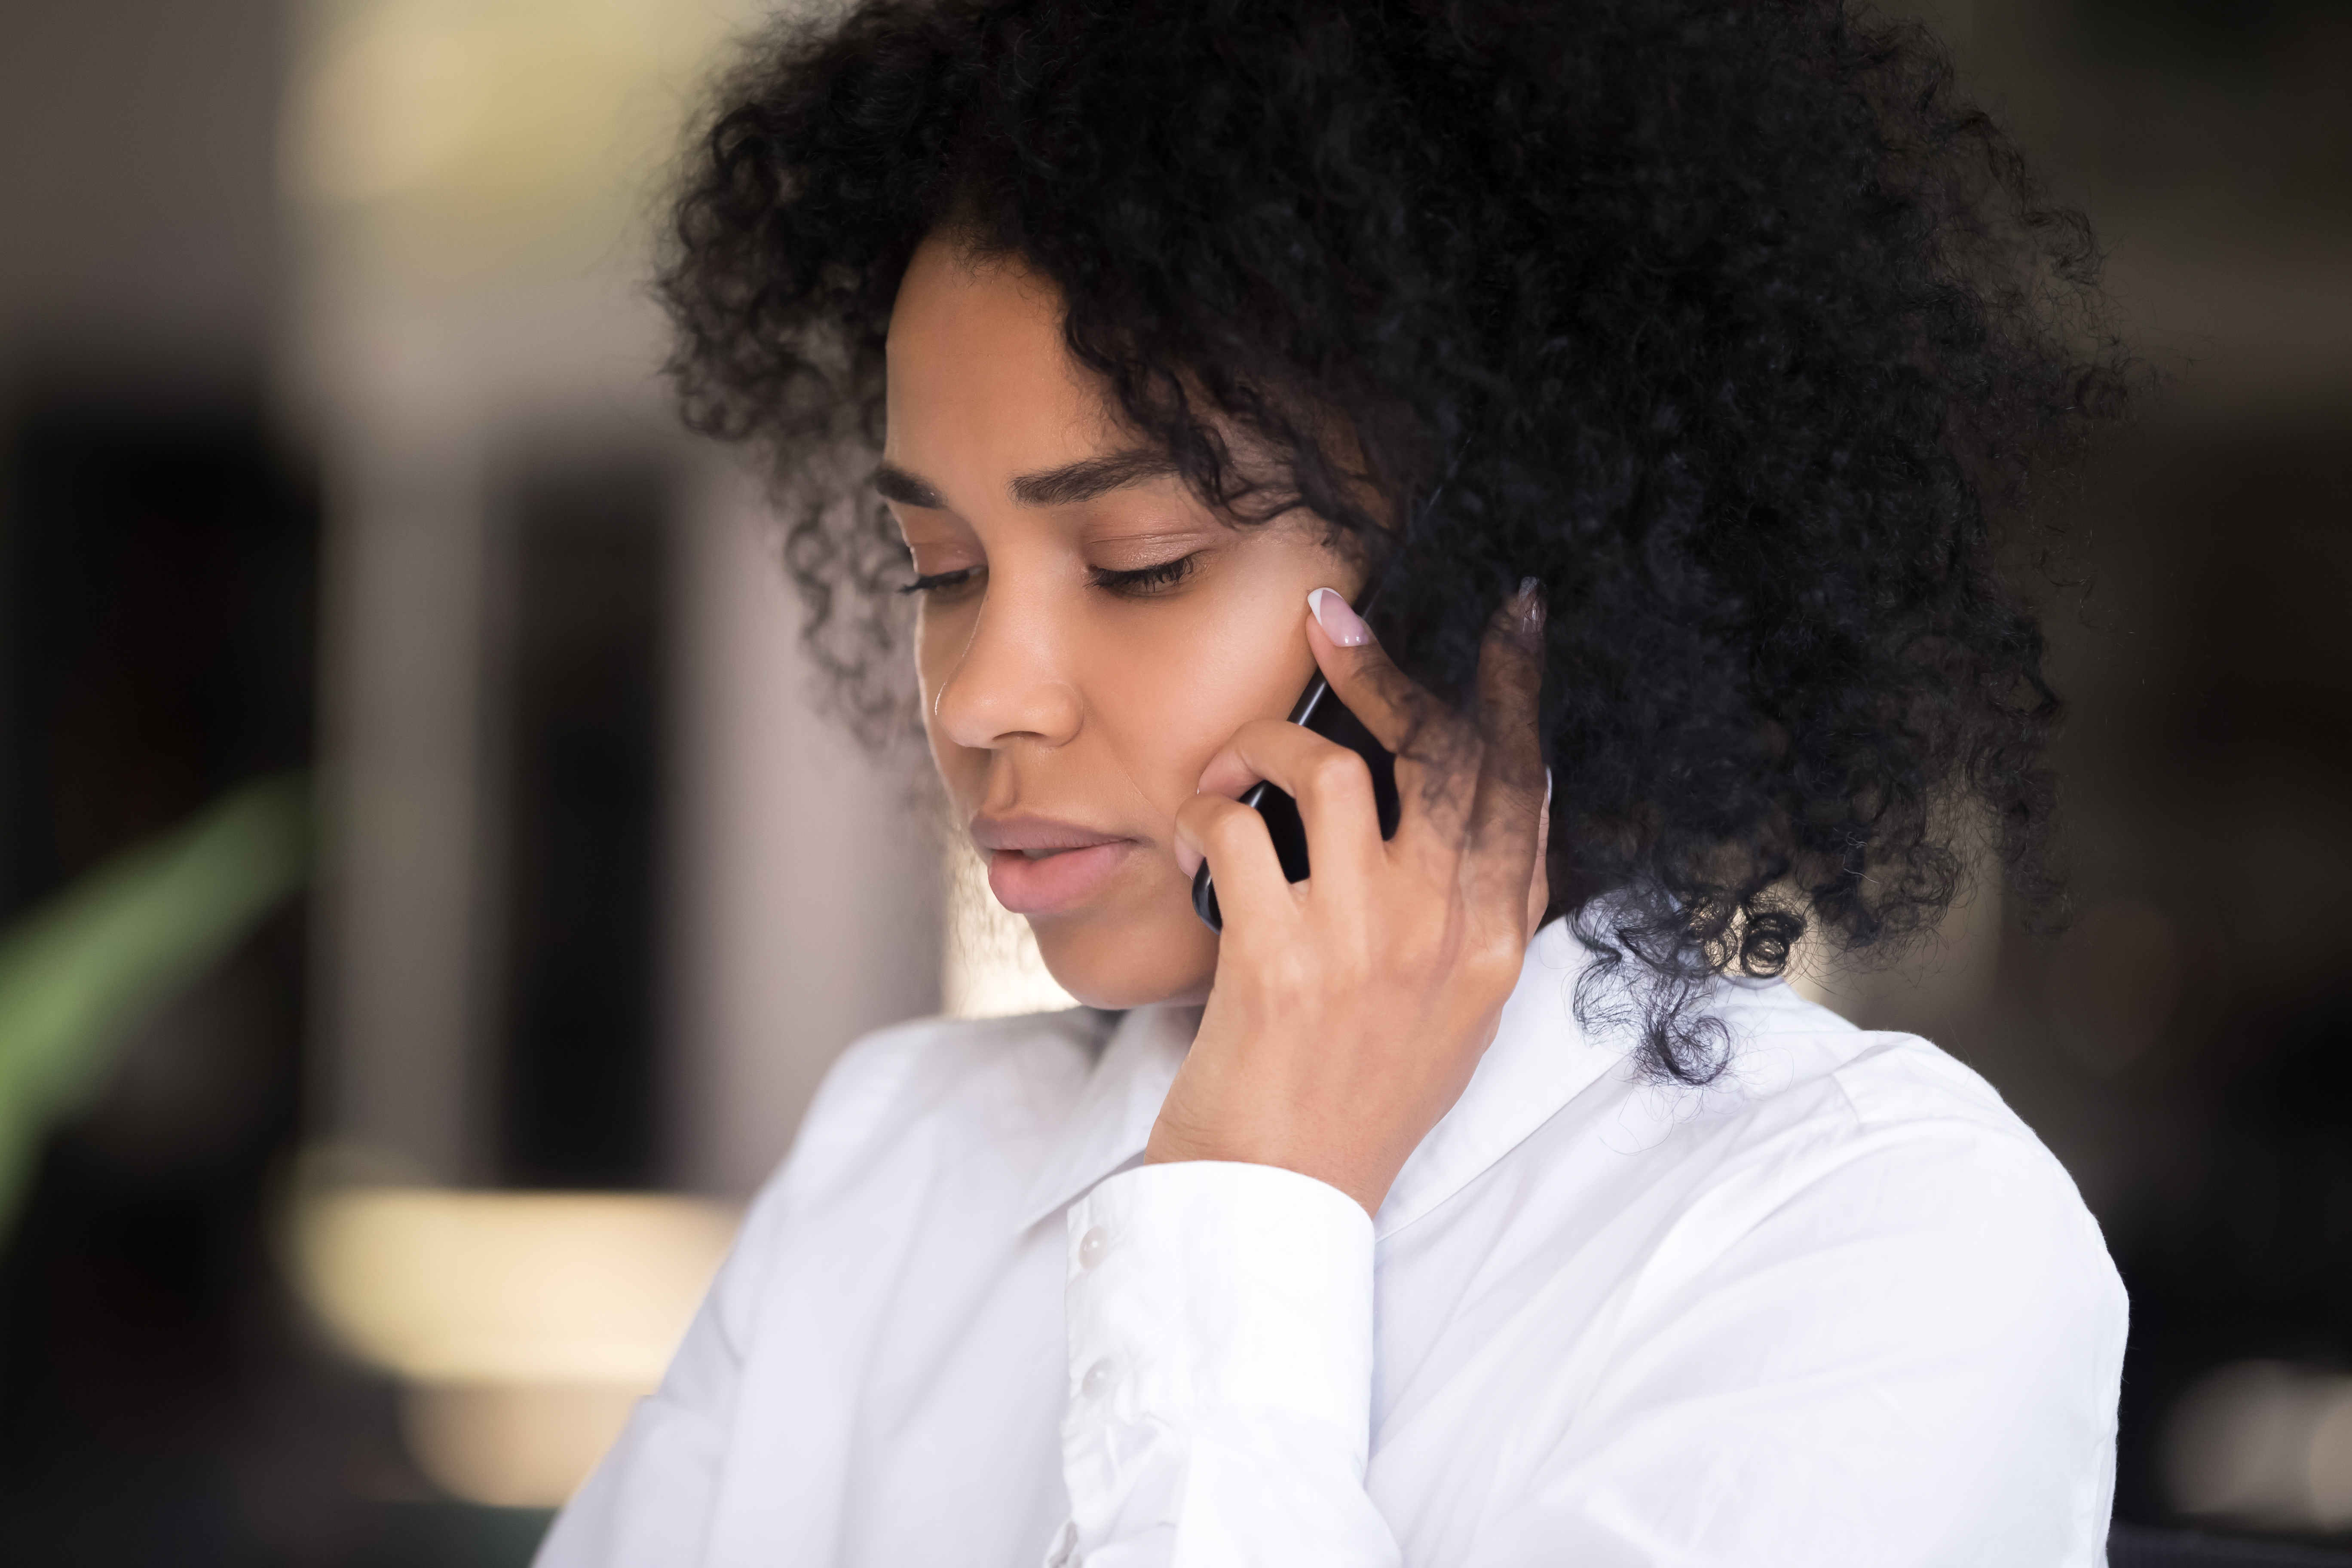 Close up of pensive millennial African American woman talk on smartphone thinking of idea or news, serious black female speak over cell, lost in thoughts considering something. Technology concept